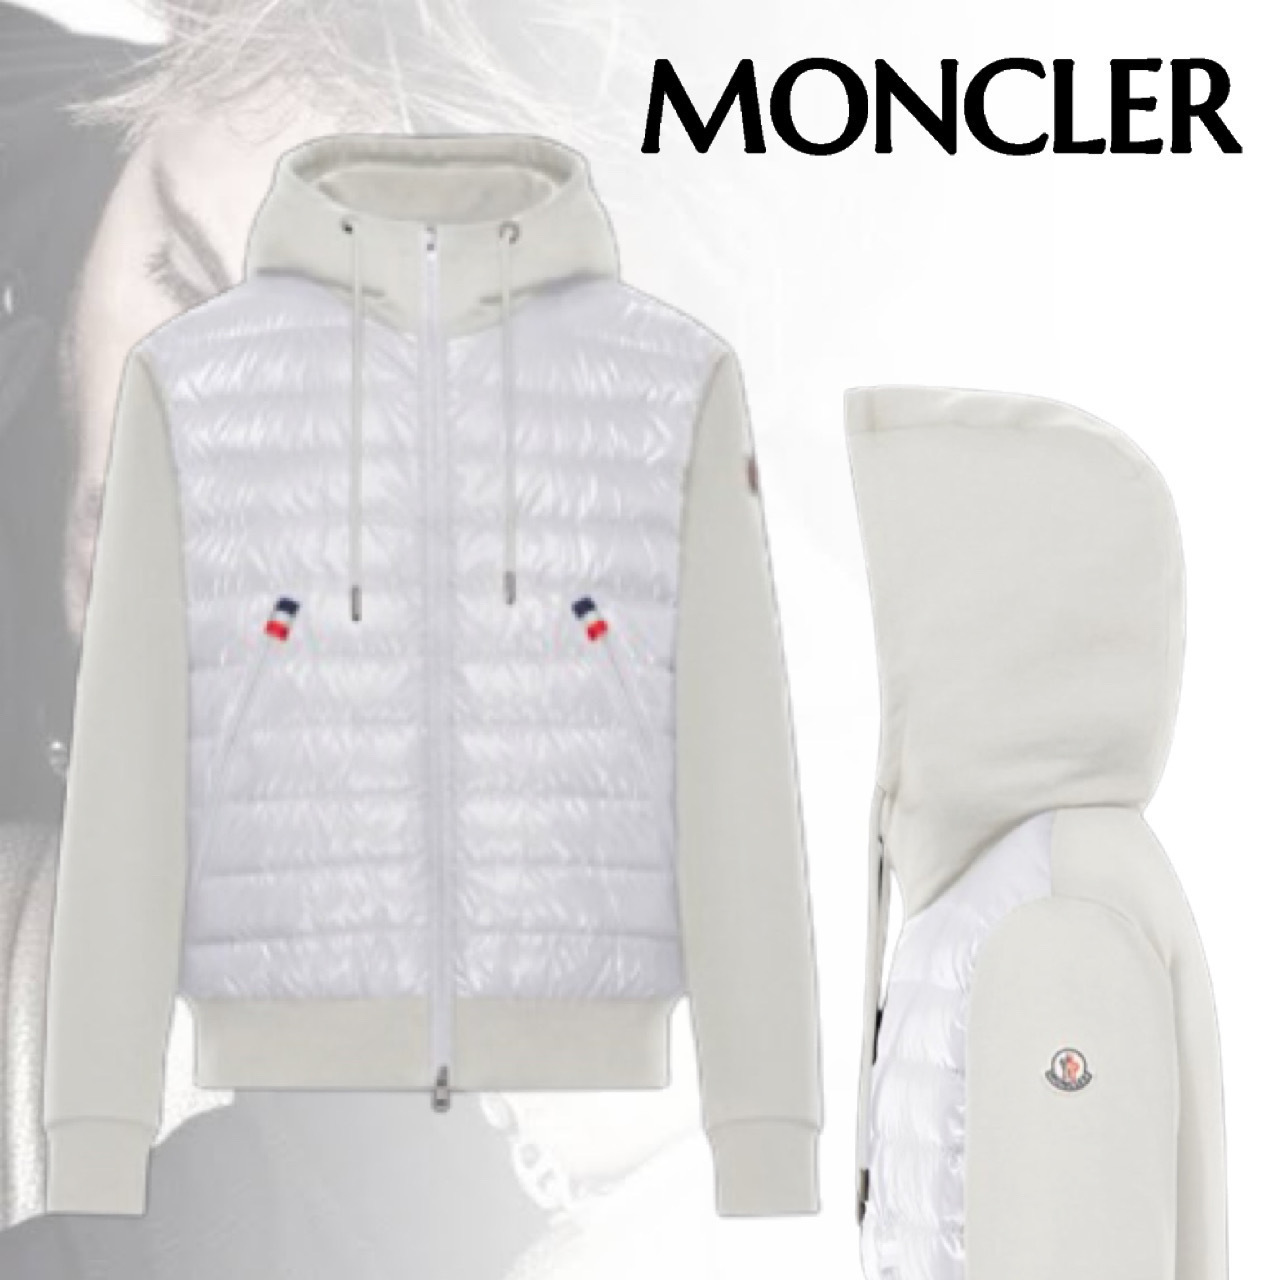 MONCLER モンクレール SWEATER WITHHOOD カーディガン ロゴ (MONCLER/カーディガン) 63528495